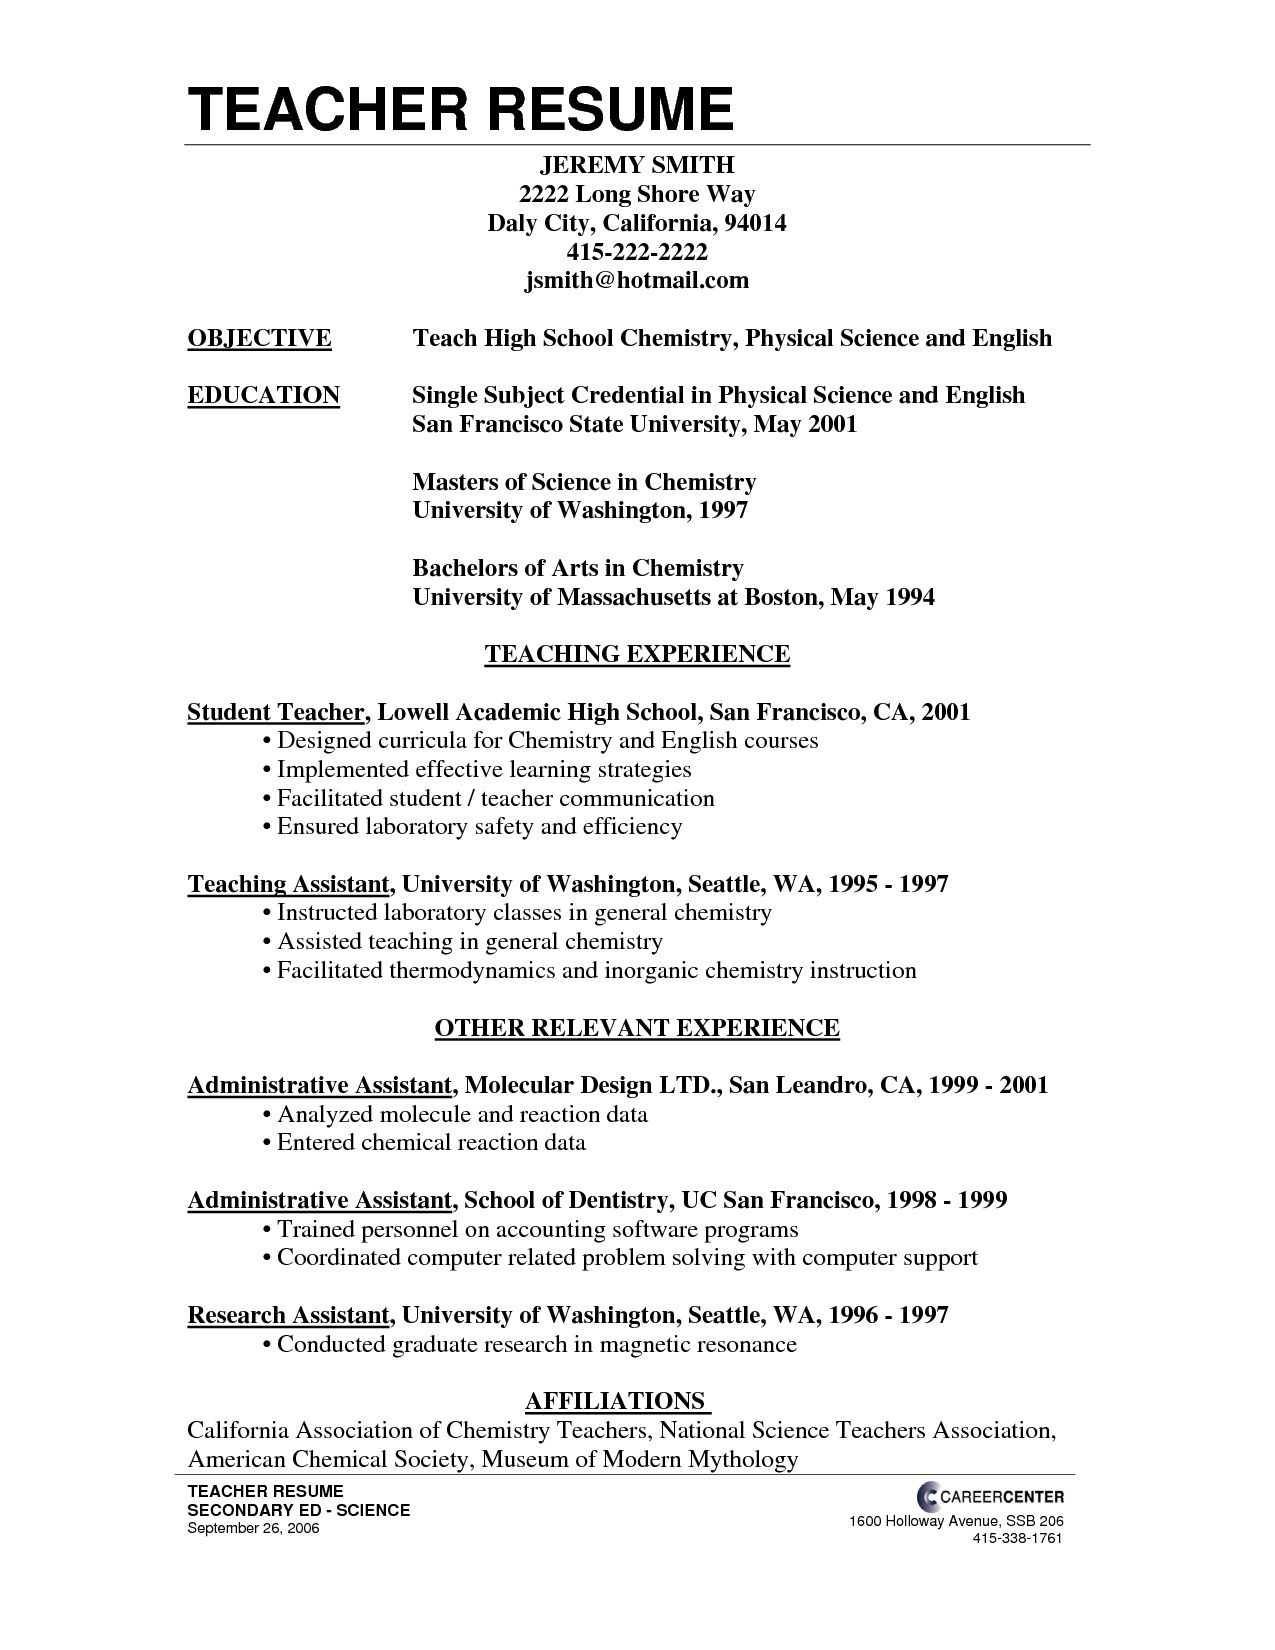 Attractive High School Teacher Resume  Resume For Teacher